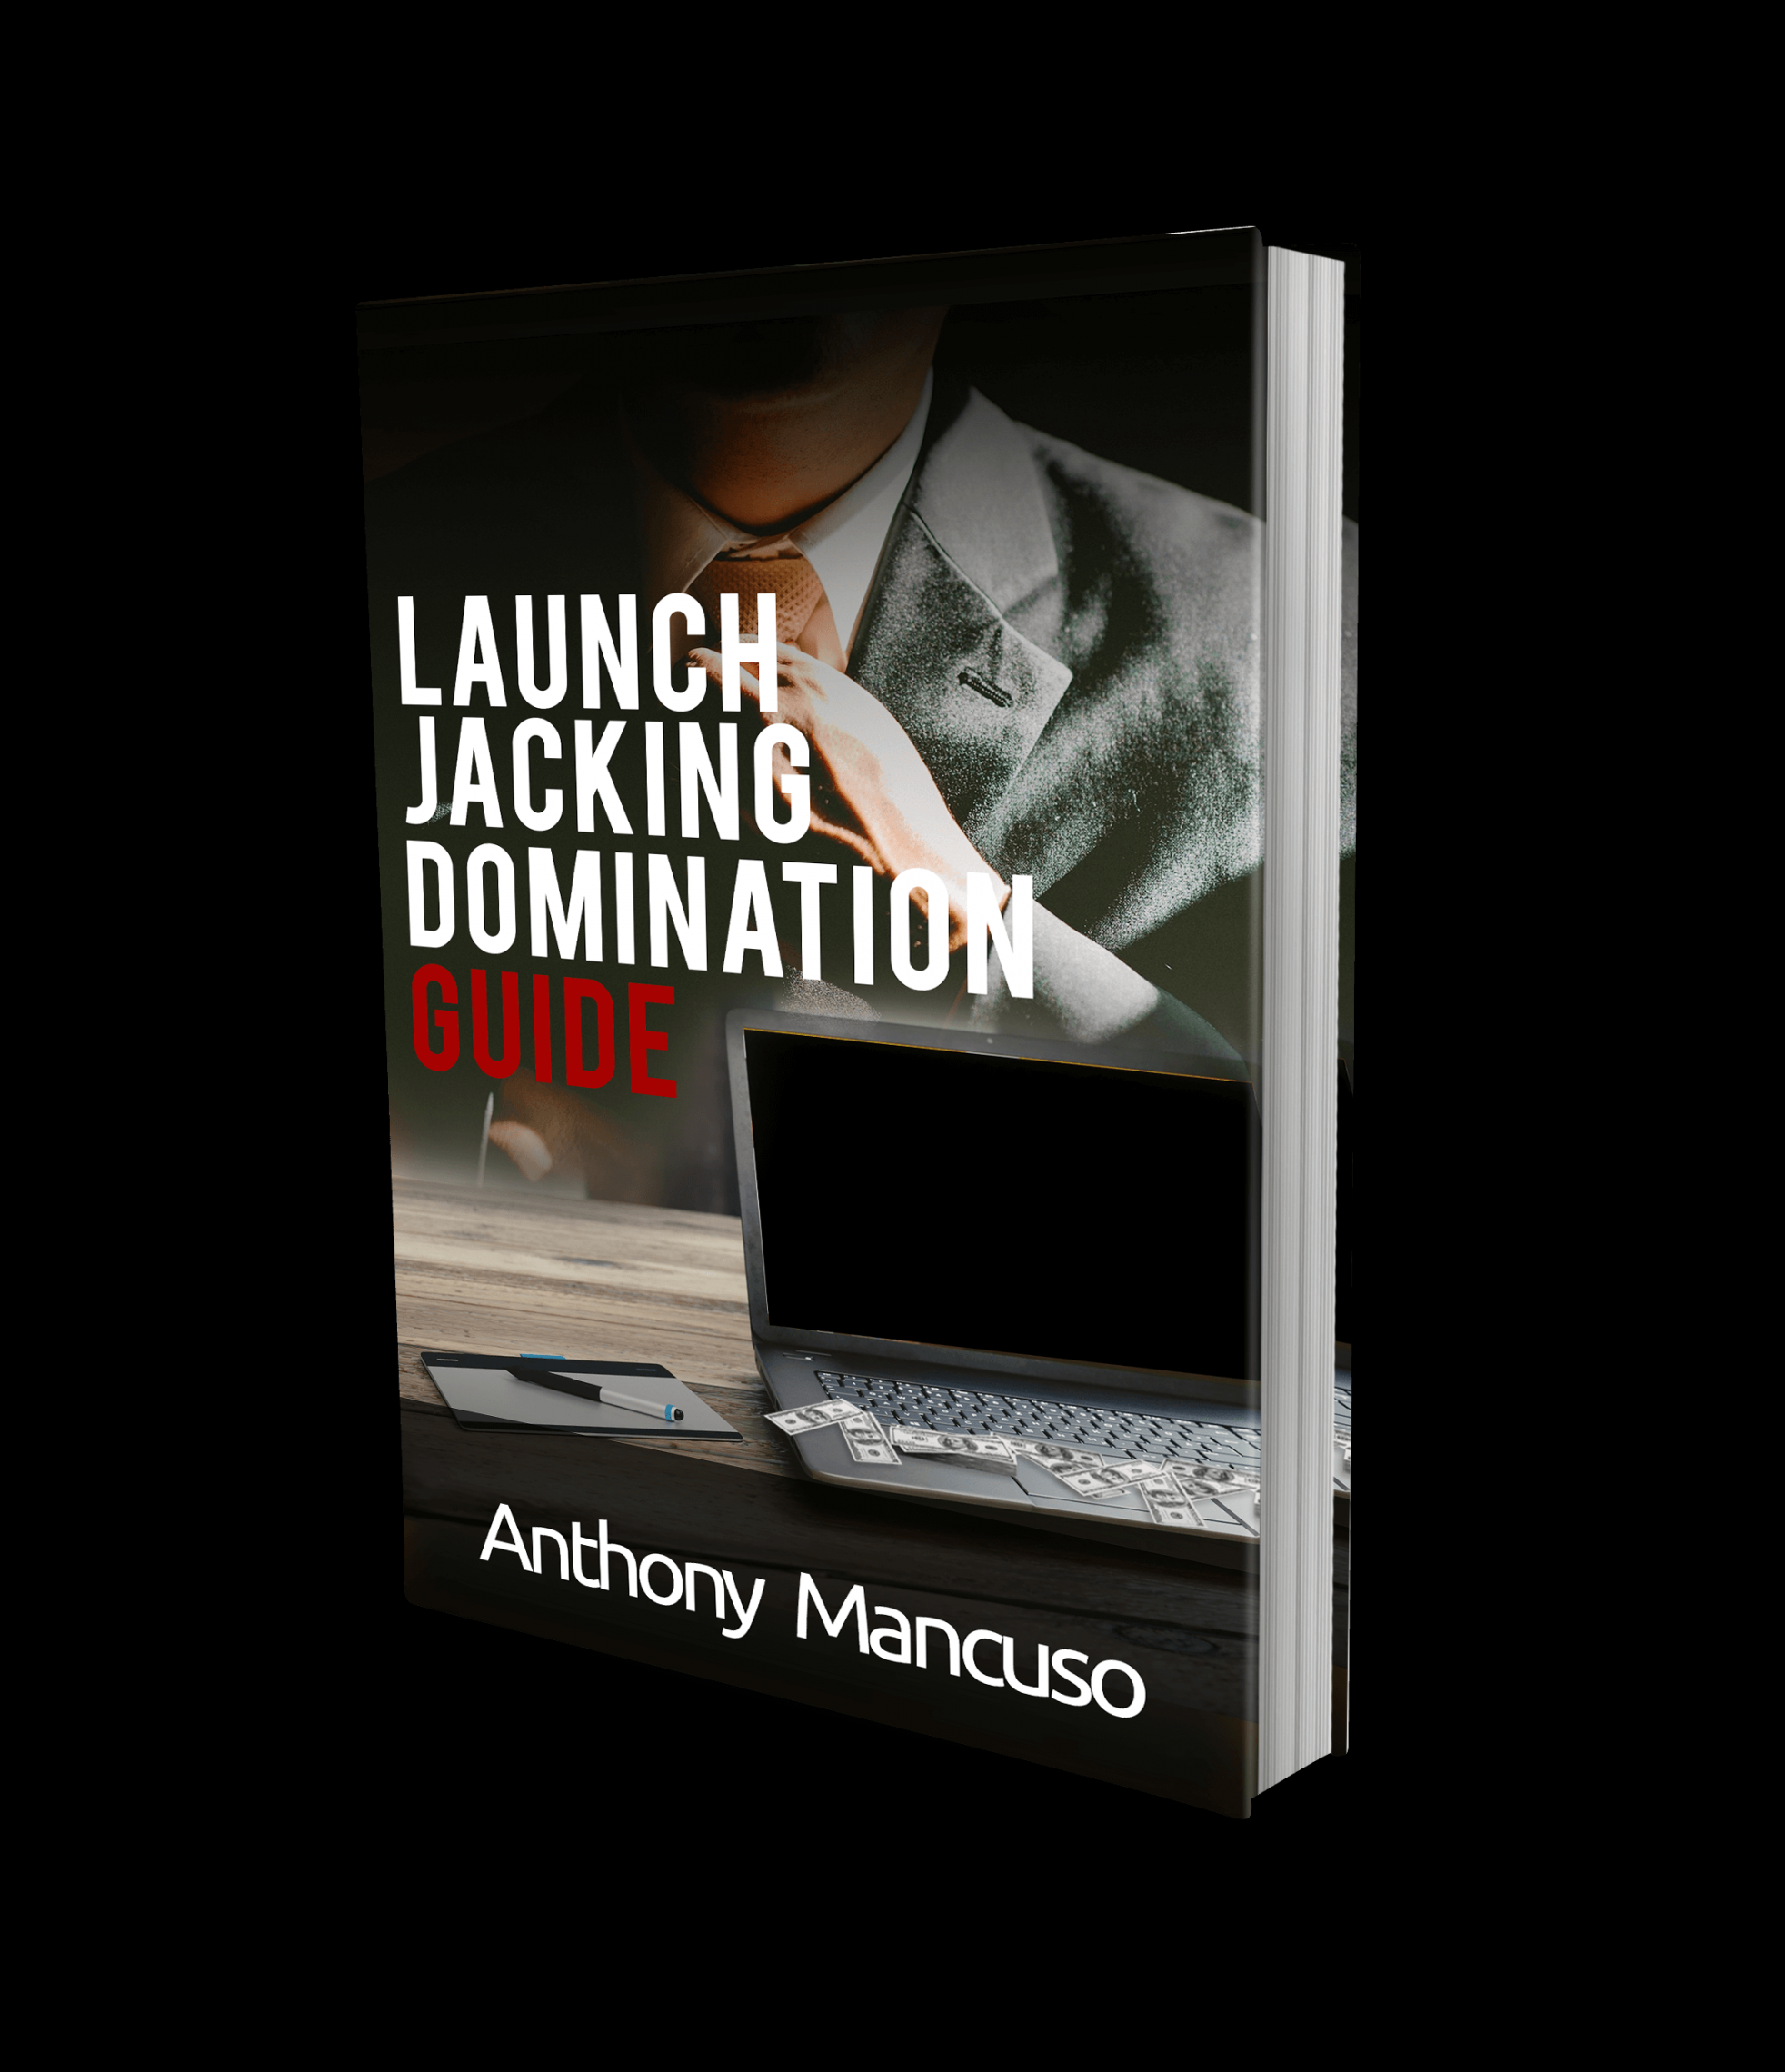 How to make an extra ,000 – ,000 a month using my tried and proven launch jacking methods.(Launch Jacking Domination)